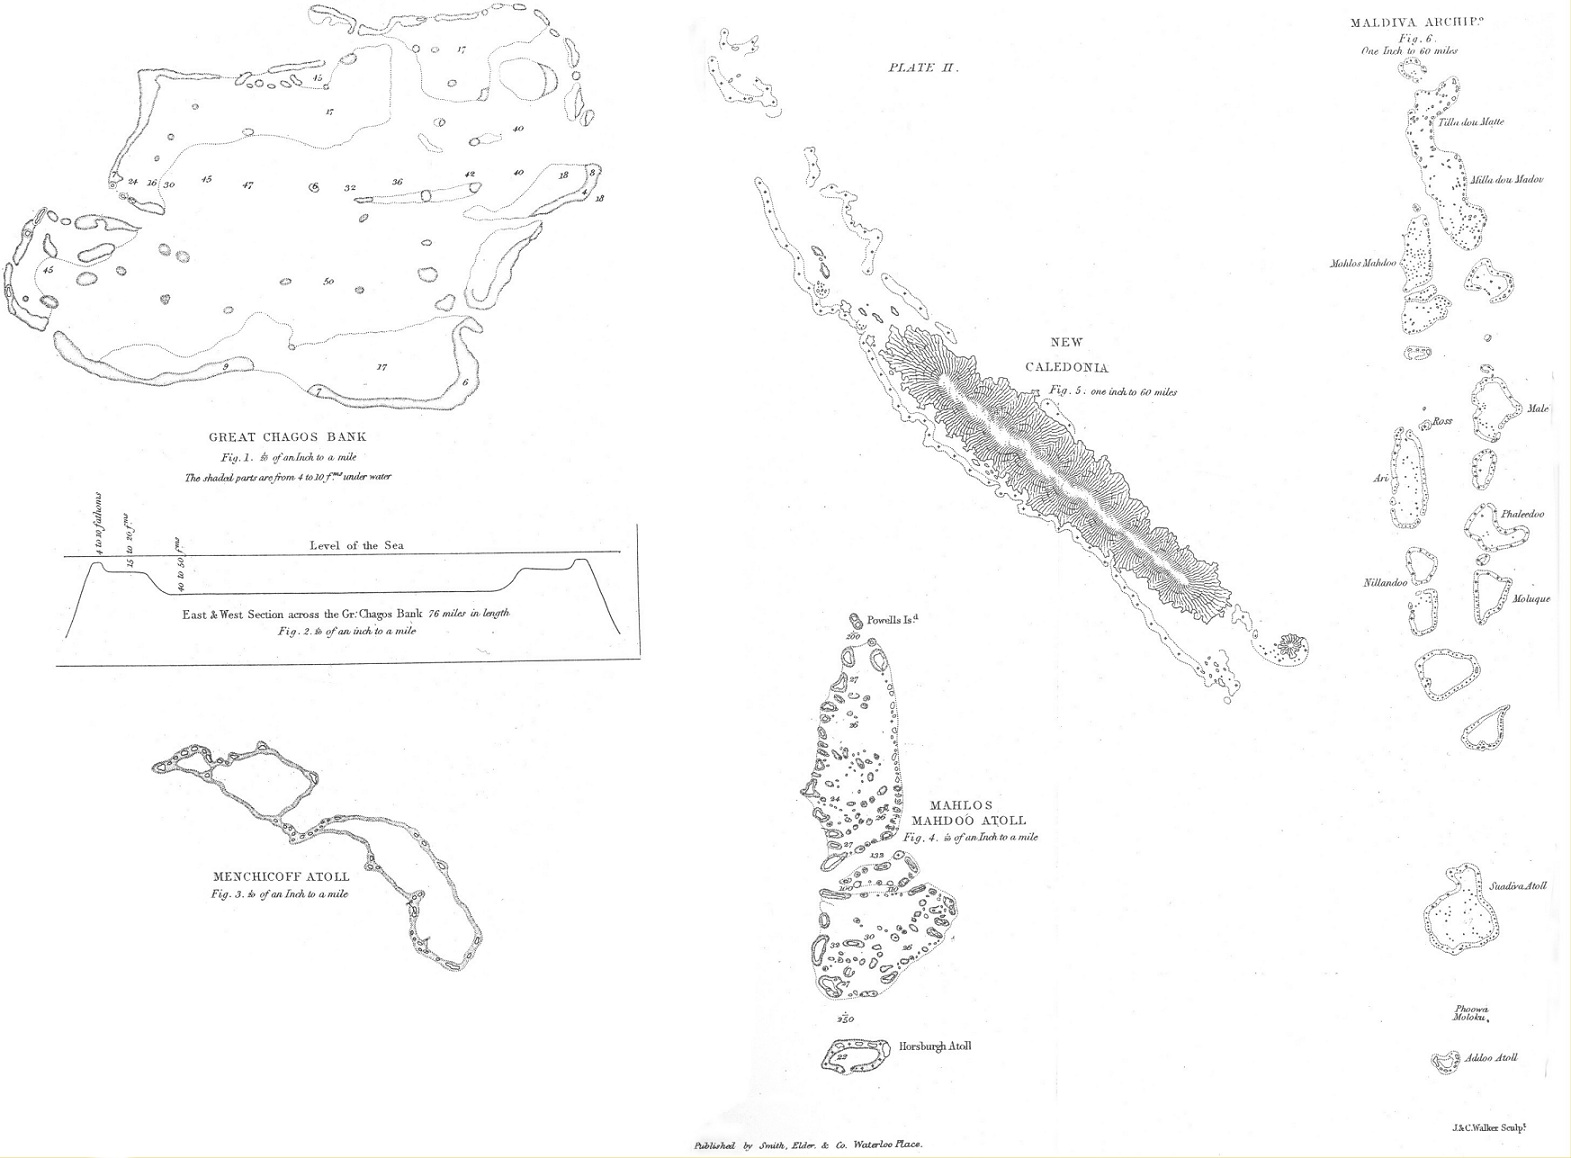 Darwin, C. R. 1842. The structure and distribution of